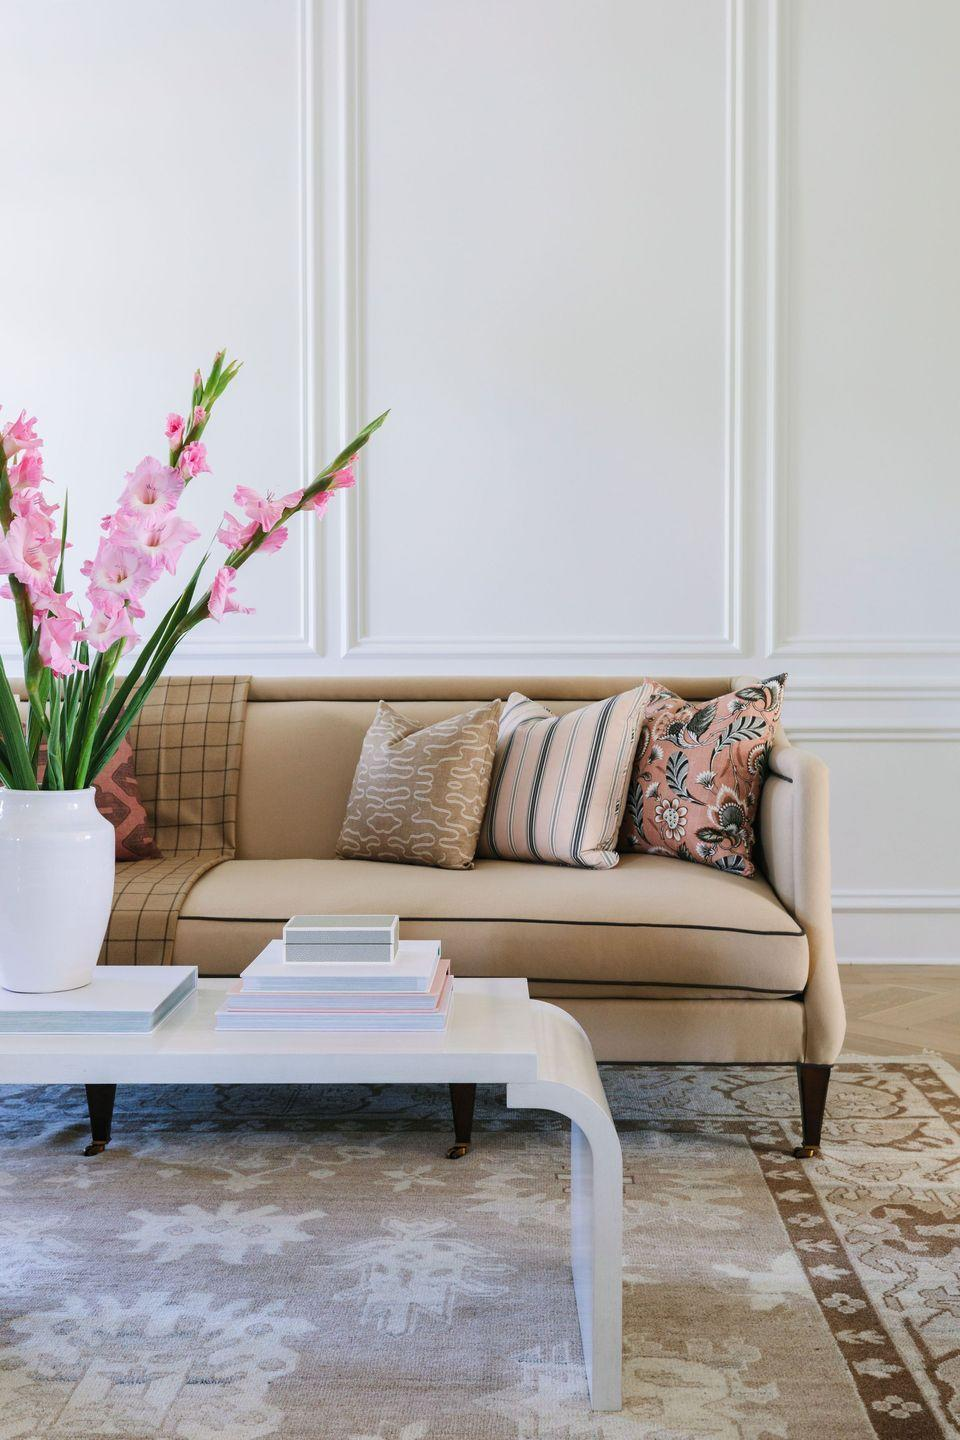 """<p>Ever since the """"millennial pink"""" craze began around 2016, blush has been a popular year-round color — but obviously, it's got a particular allure in spring. """"One of our favorite color combos for spring is white, camel/taupe, and soft pink,"""" says Bria Hammel of <a href=""""https://briahammelinteriors.com/"""" rel=""""nofollow noopener"""" target=""""_blank"""" data-ylk=""""slk:Bria Hammel Interiors"""" class=""""link rapid-noclick-resp"""">Bria Hammel Interiors</a>. """"It's such a timeless color palette because of its neutrality, but it also provides a bit of warmth and subtle color to a space without going too over the top."""" </p><p><strong>RELATED:</strong> <a href=""""https://www.goodhousekeeping.com/home/decorating-ideas/g1500/decor-ideas-living-room/"""" rel=""""nofollow noopener"""" target=""""_blank"""" data-ylk=""""slk:50+ Living Room Ideas for an Inspired Space"""" class=""""link rapid-noclick-resp"""">50+ Living Room Ideas for an Inspired Space</a></p>"""